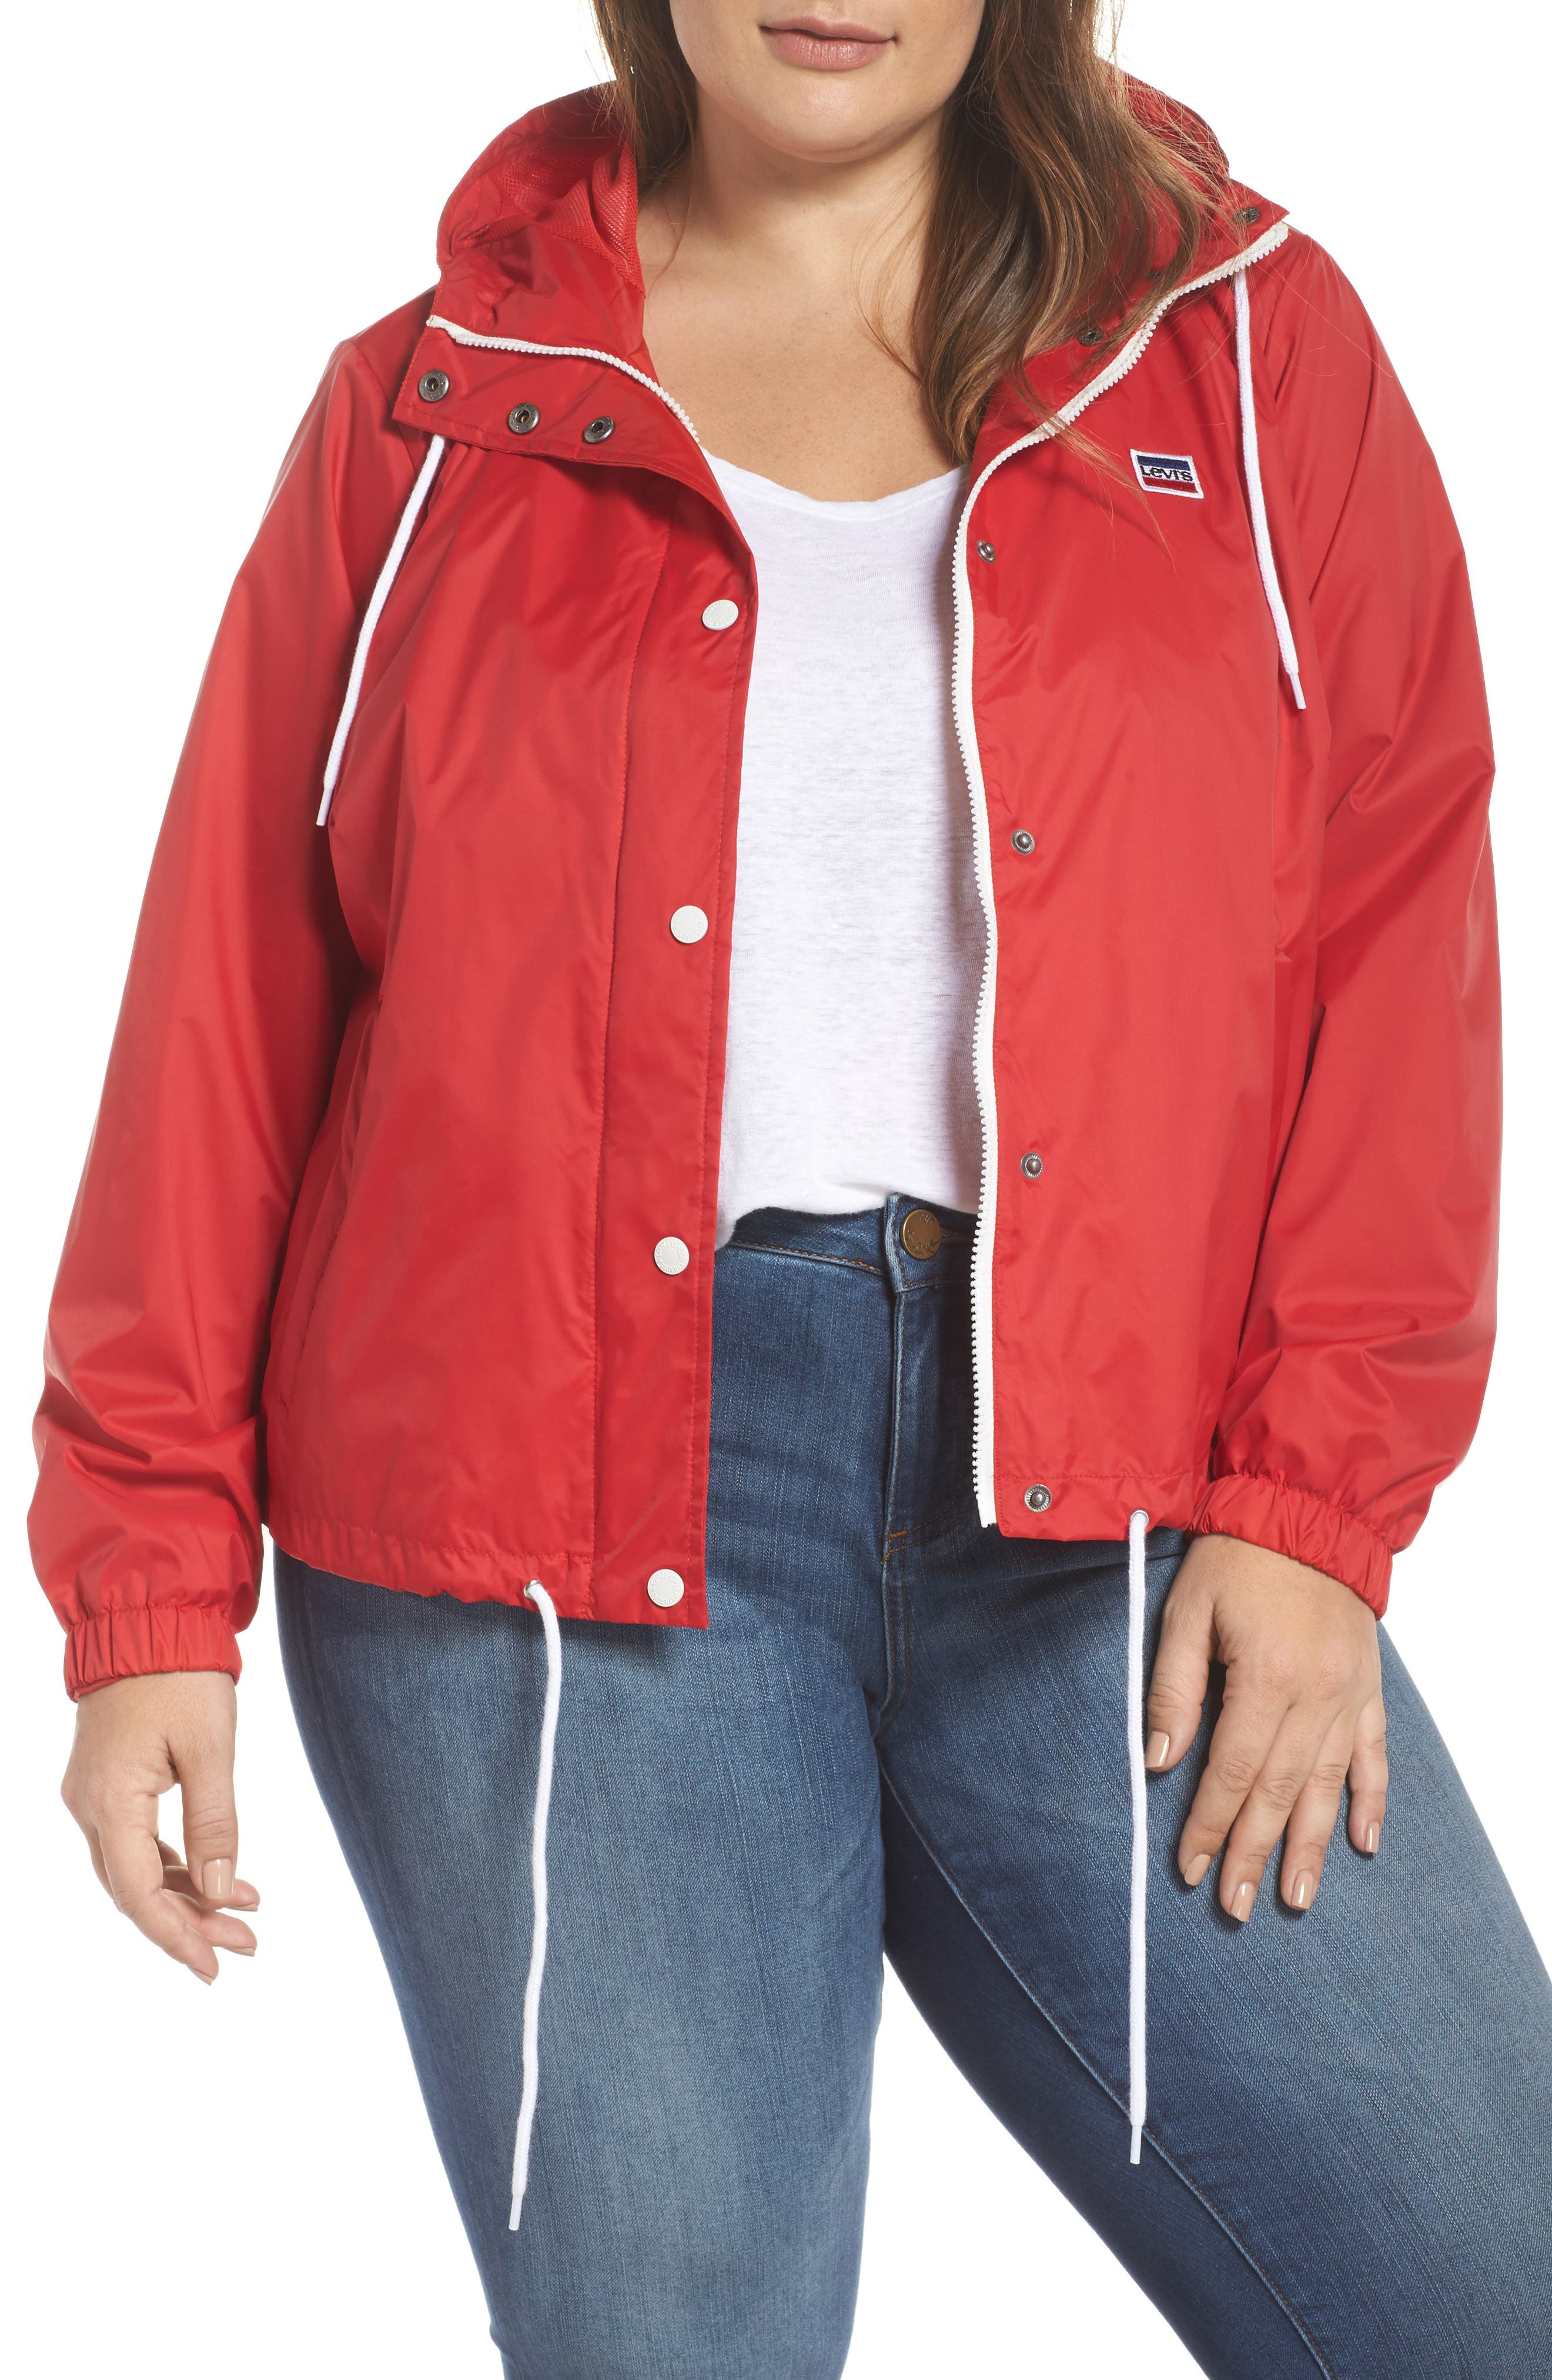 Retro Hooded Coach's Jacket,                             Main thumbnail 3, color,